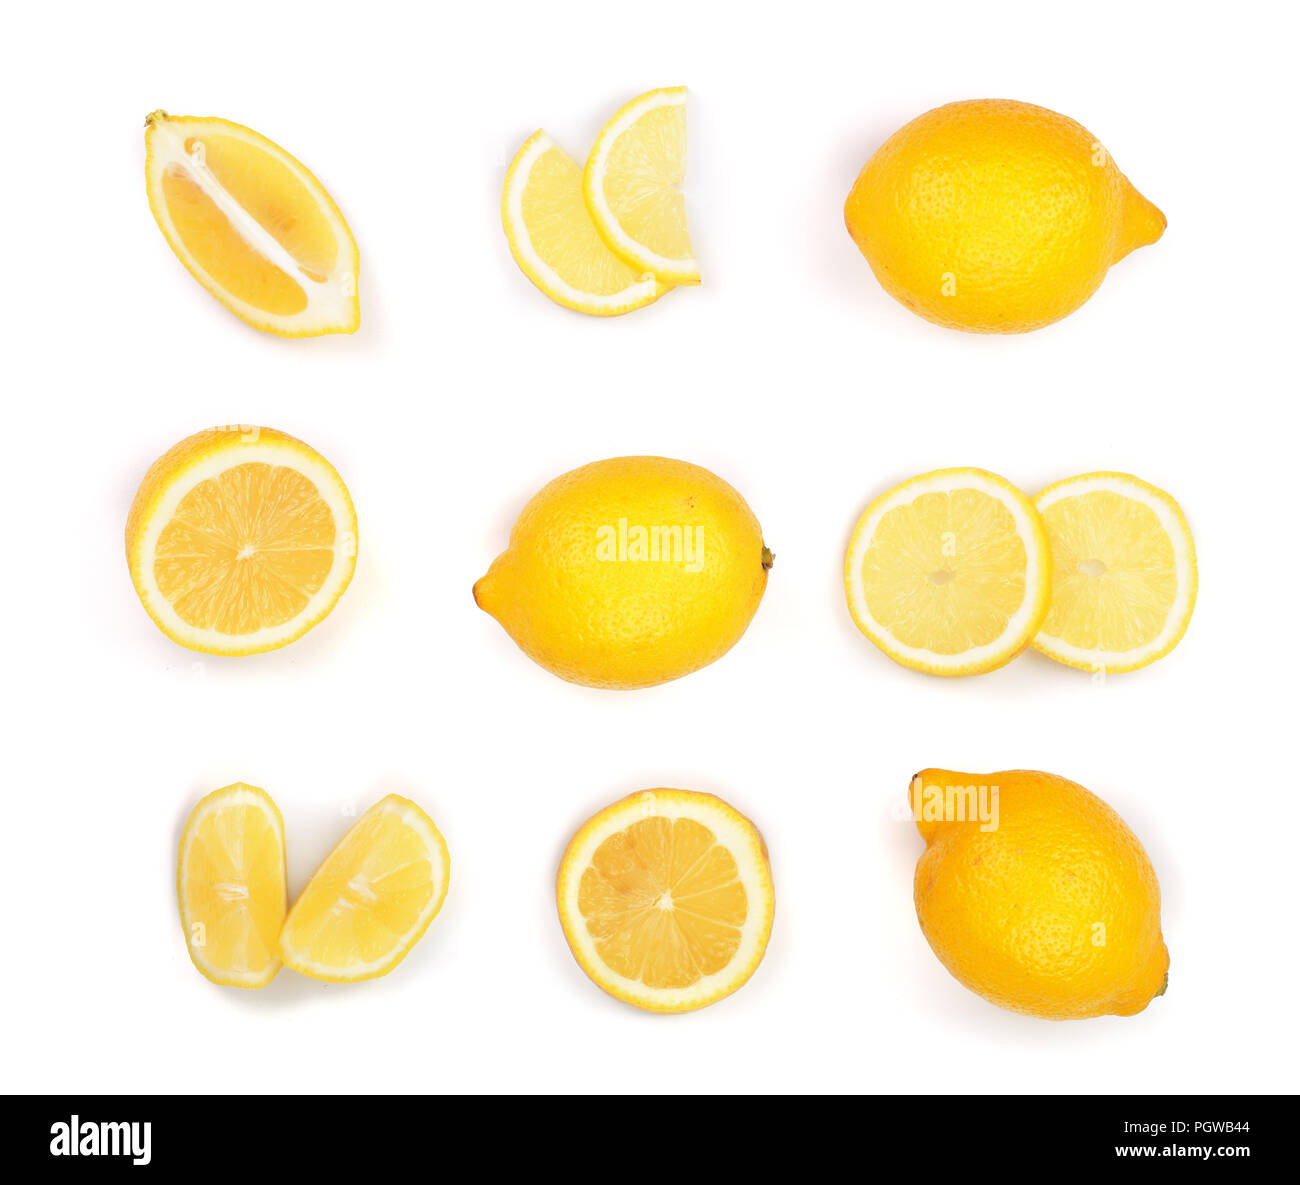 Lemon isolated on white background. Seamless pattern with fruits. Top view. Flat lay Stock Photo